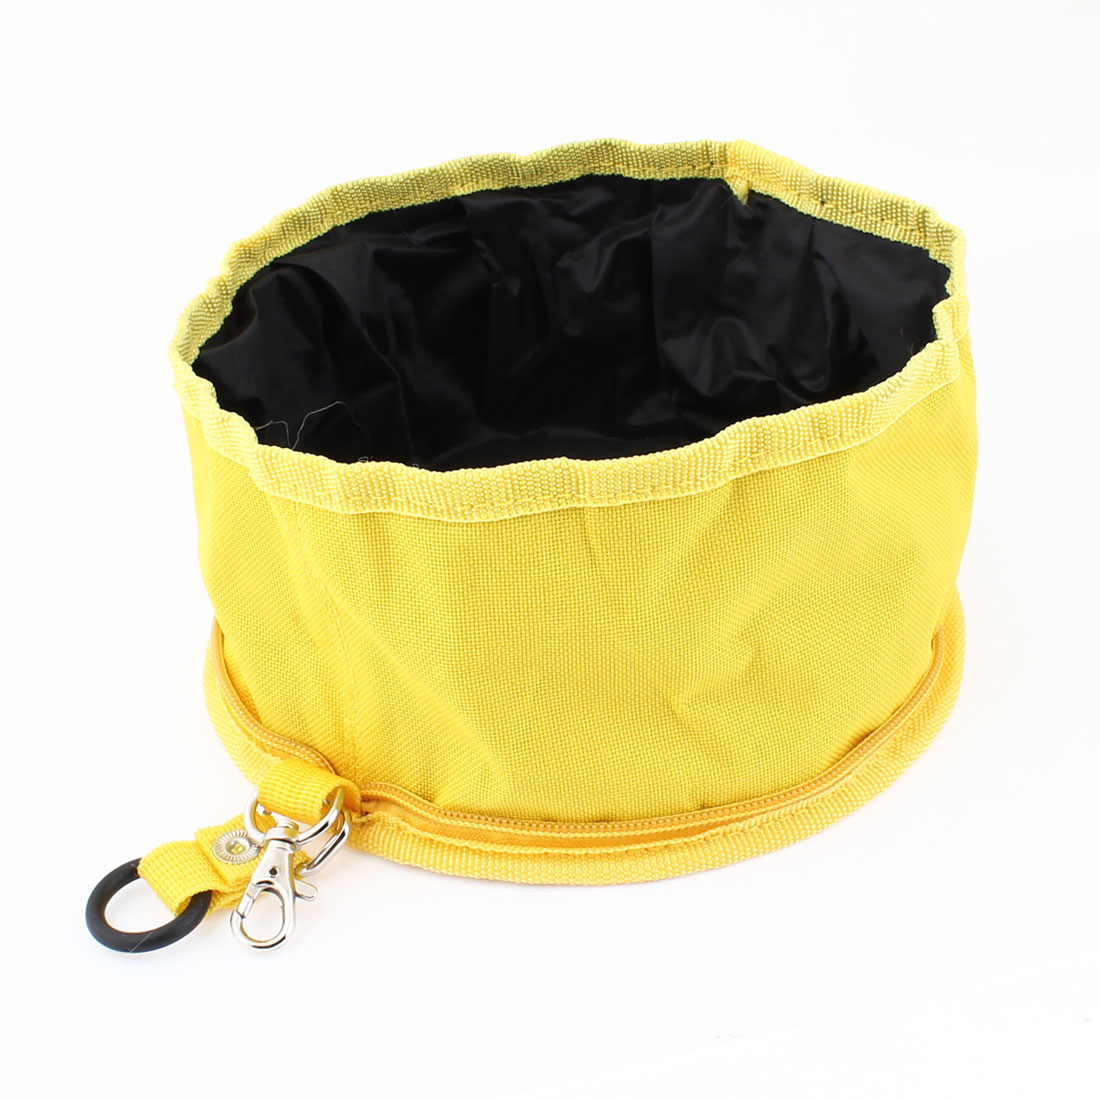 Unique Bargains Travel Foldable Portable Yellow Black Zippered Pet Dog Cat Food Bowl